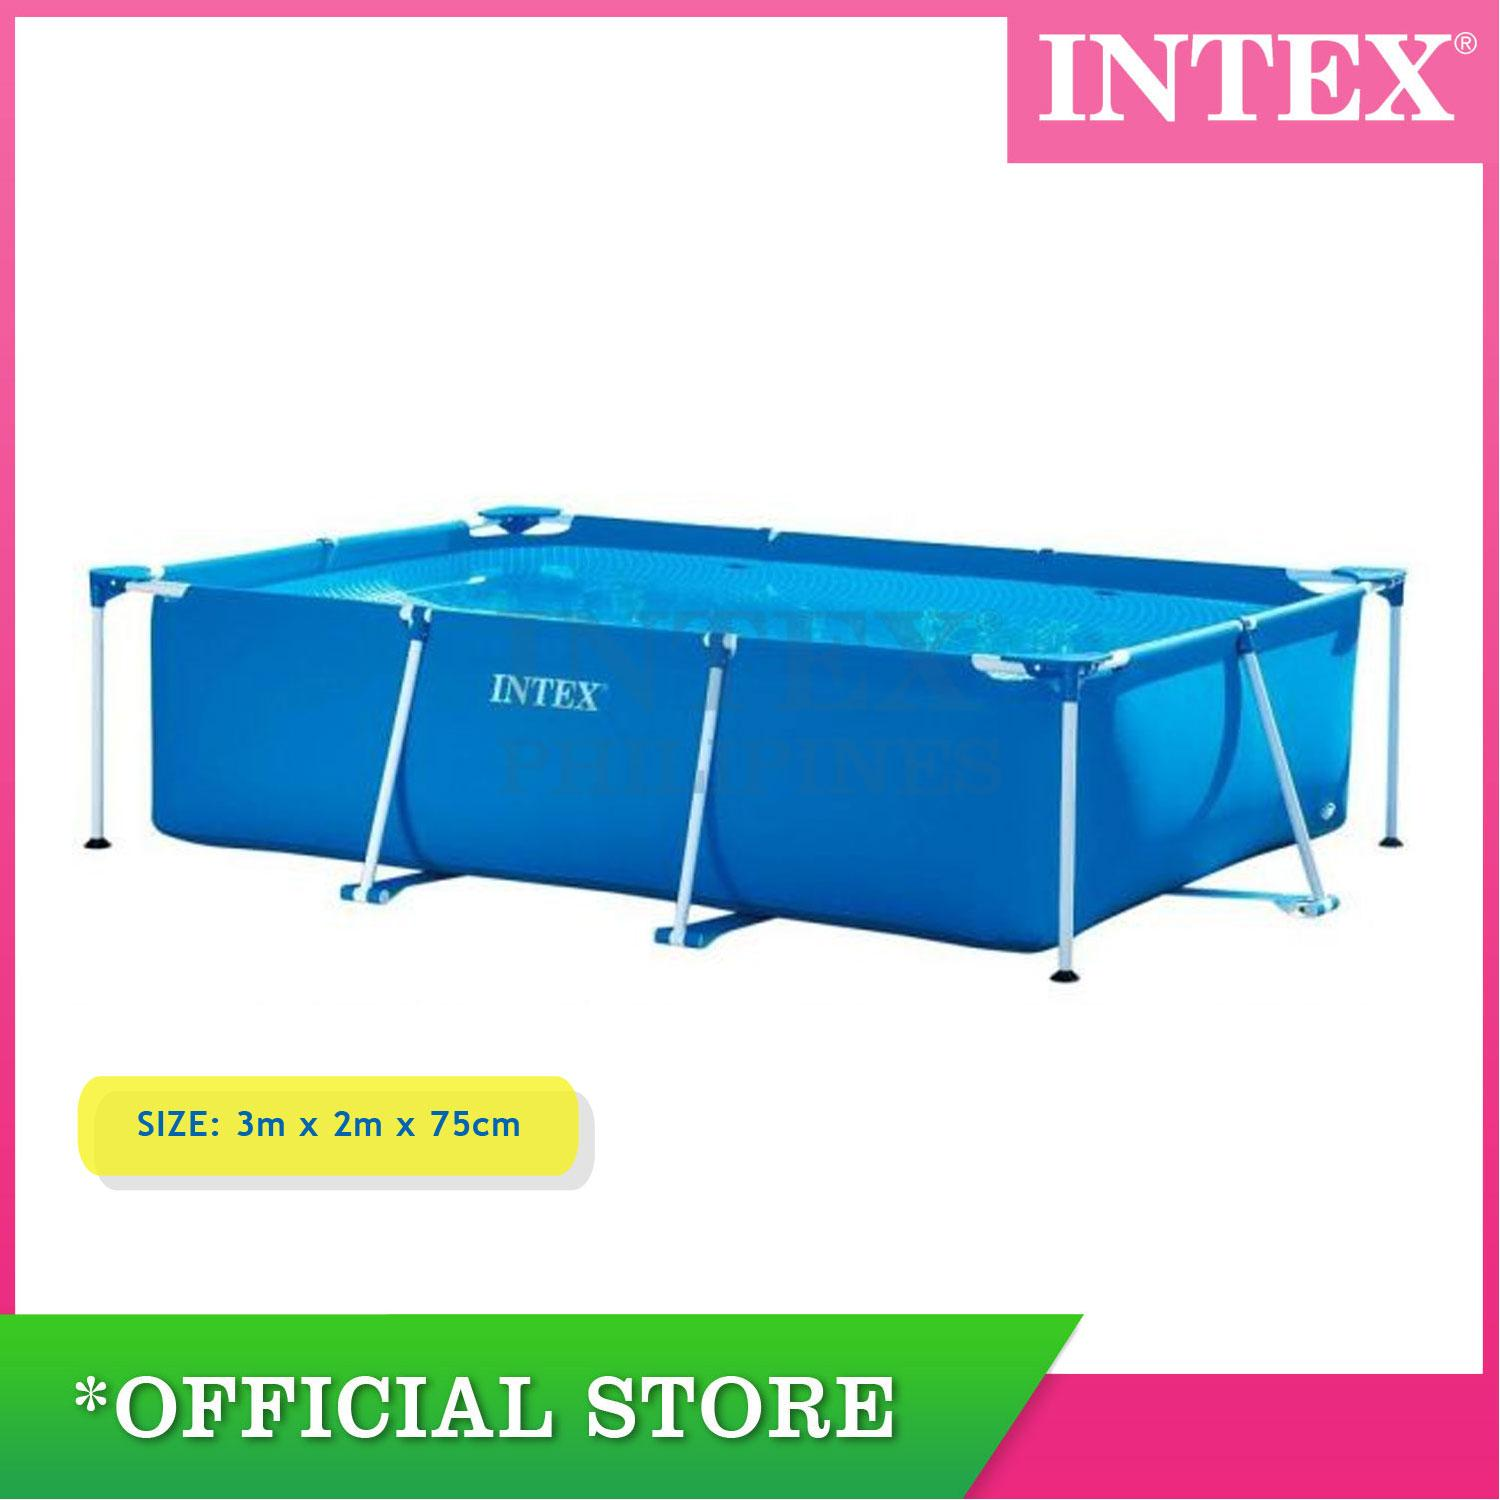 Jilong Pool Reinigungsset Intex Rectangular Frame Pool 3 00m X 2 00m X 75cm